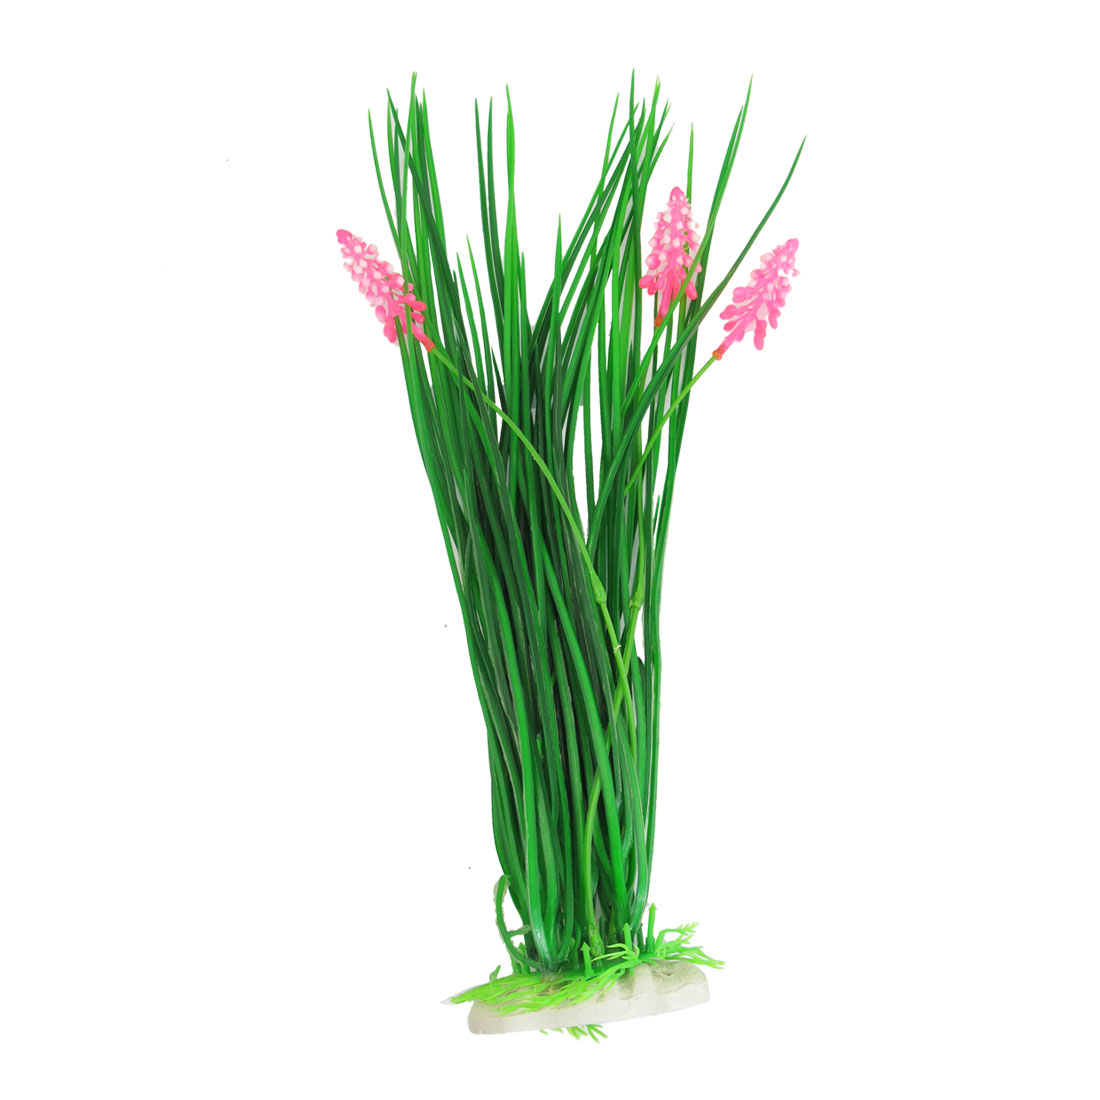 "16"" x 3"" Pink Green Flowering Plastic Grass Plants for Aquarium"